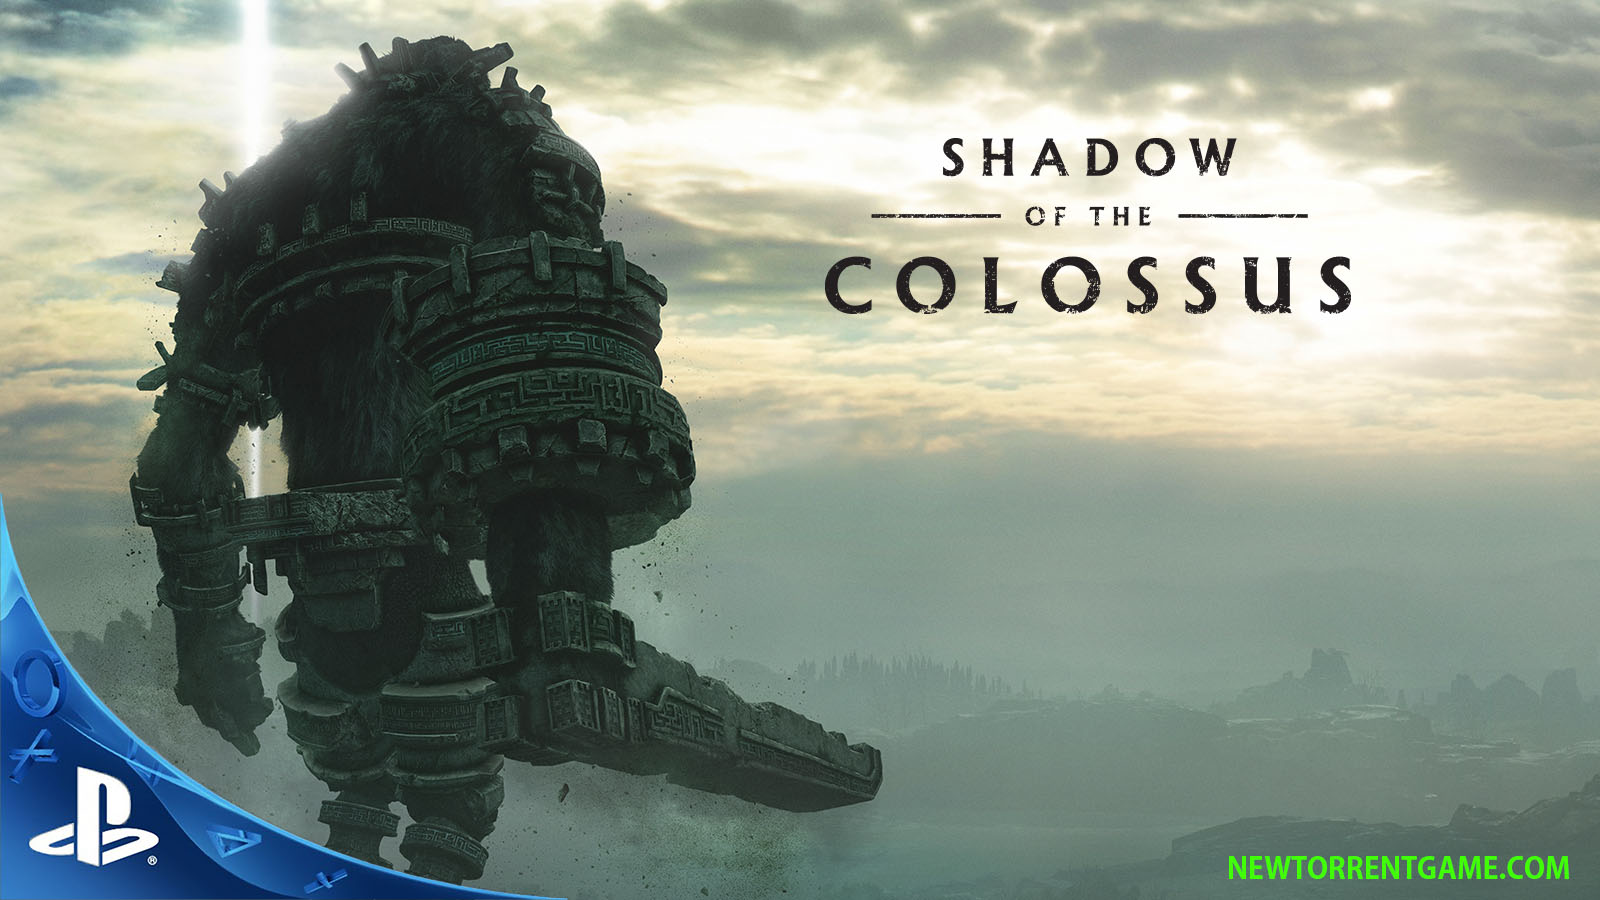 SHADOW OF THE COLOSSUS PS4 TORRENT